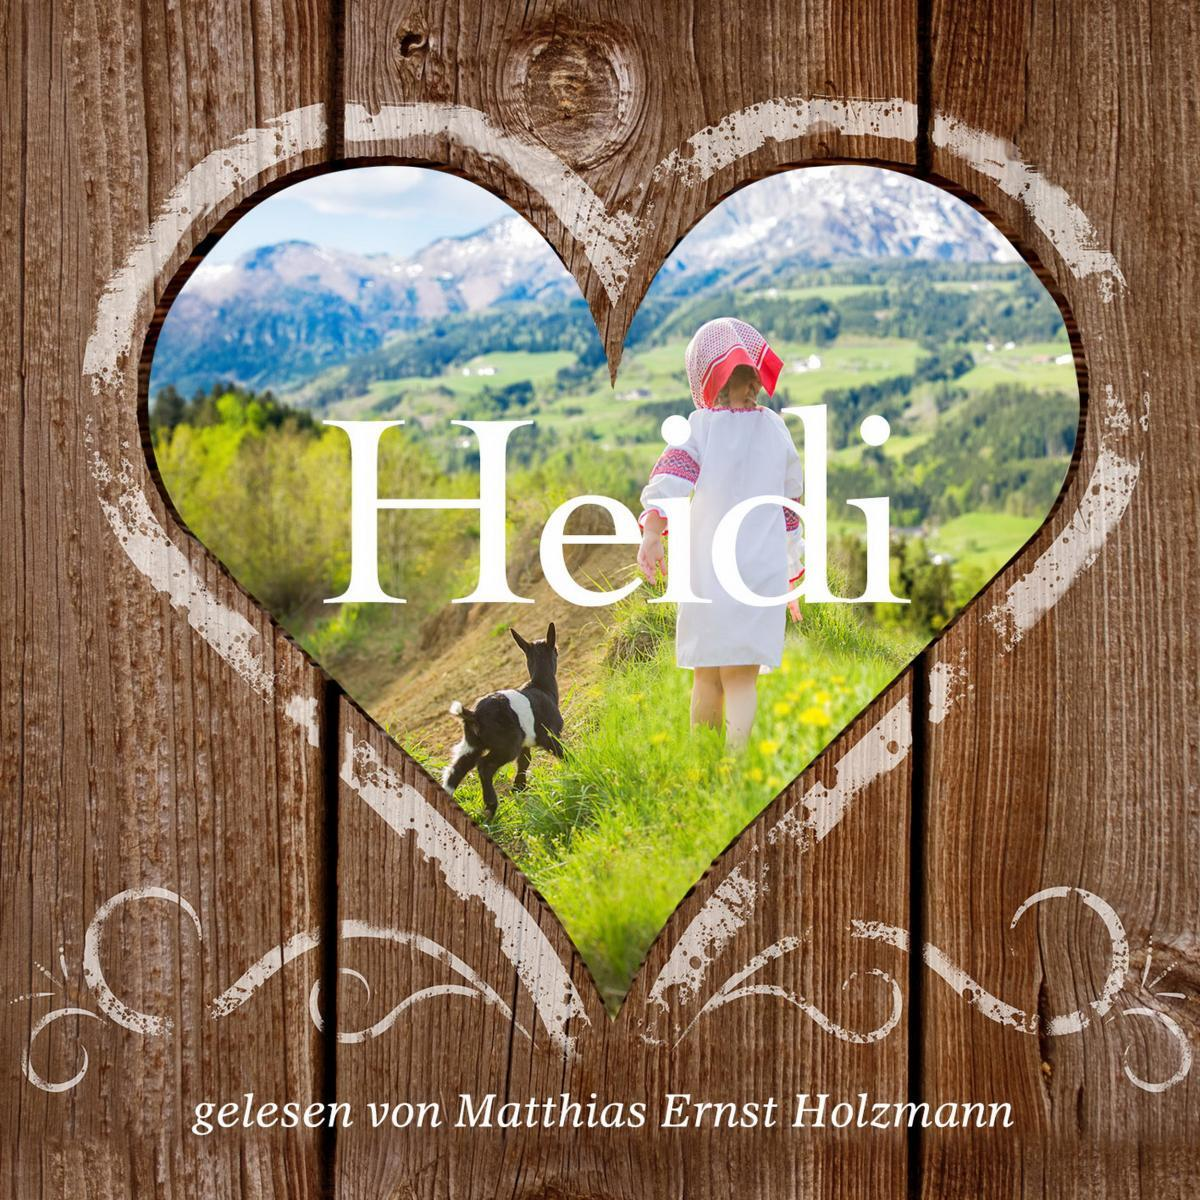 Heidi Hörbuch Download Mp3 Das Buch Heusenstamm